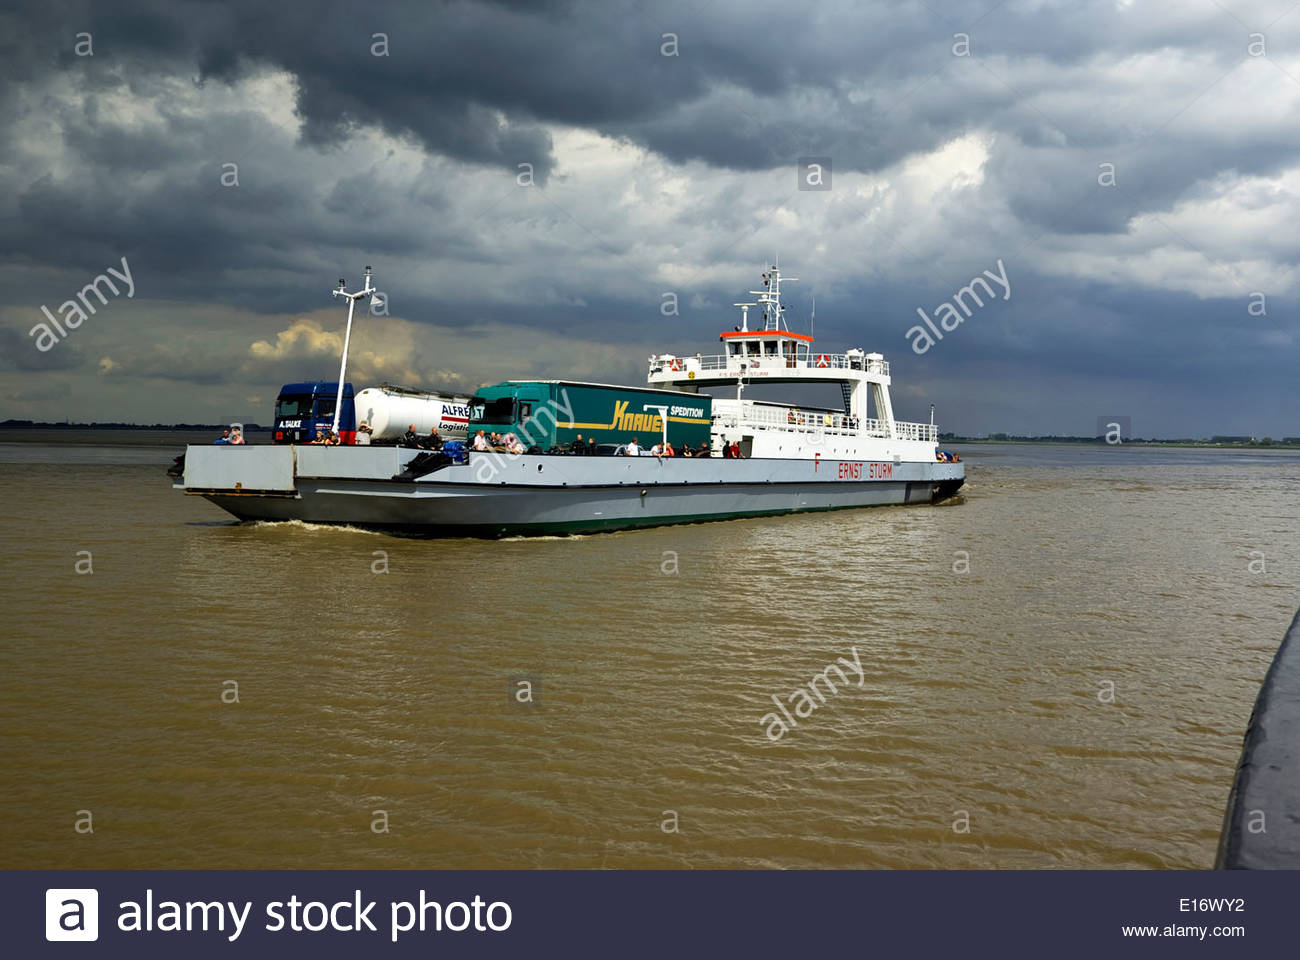 The ferry Ernst Sturm crosses the Elbe River north of Hamburg, from Wischhafen to Glückstadt, carrying vehicles and passengers. - Stock Image